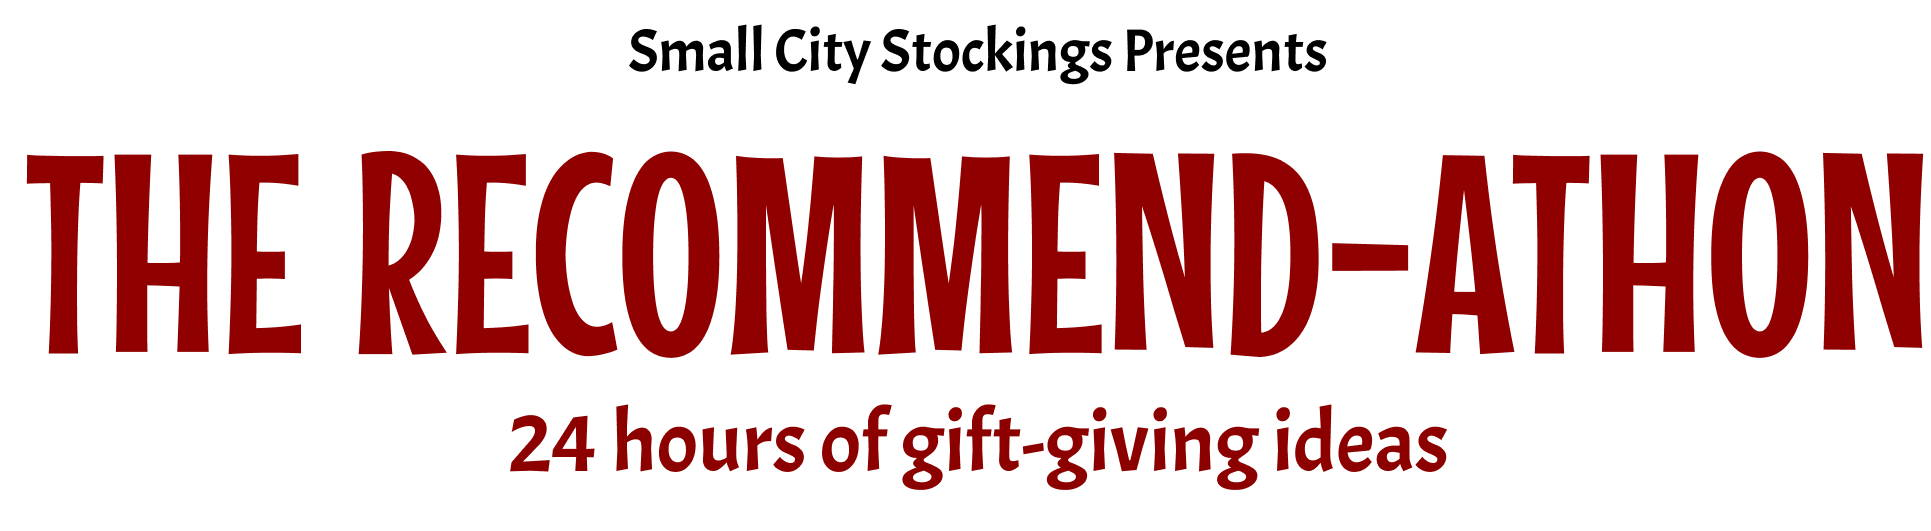 Small City Stockings Presents The Reccomend-Athon 24 hours of gift-giving ideas